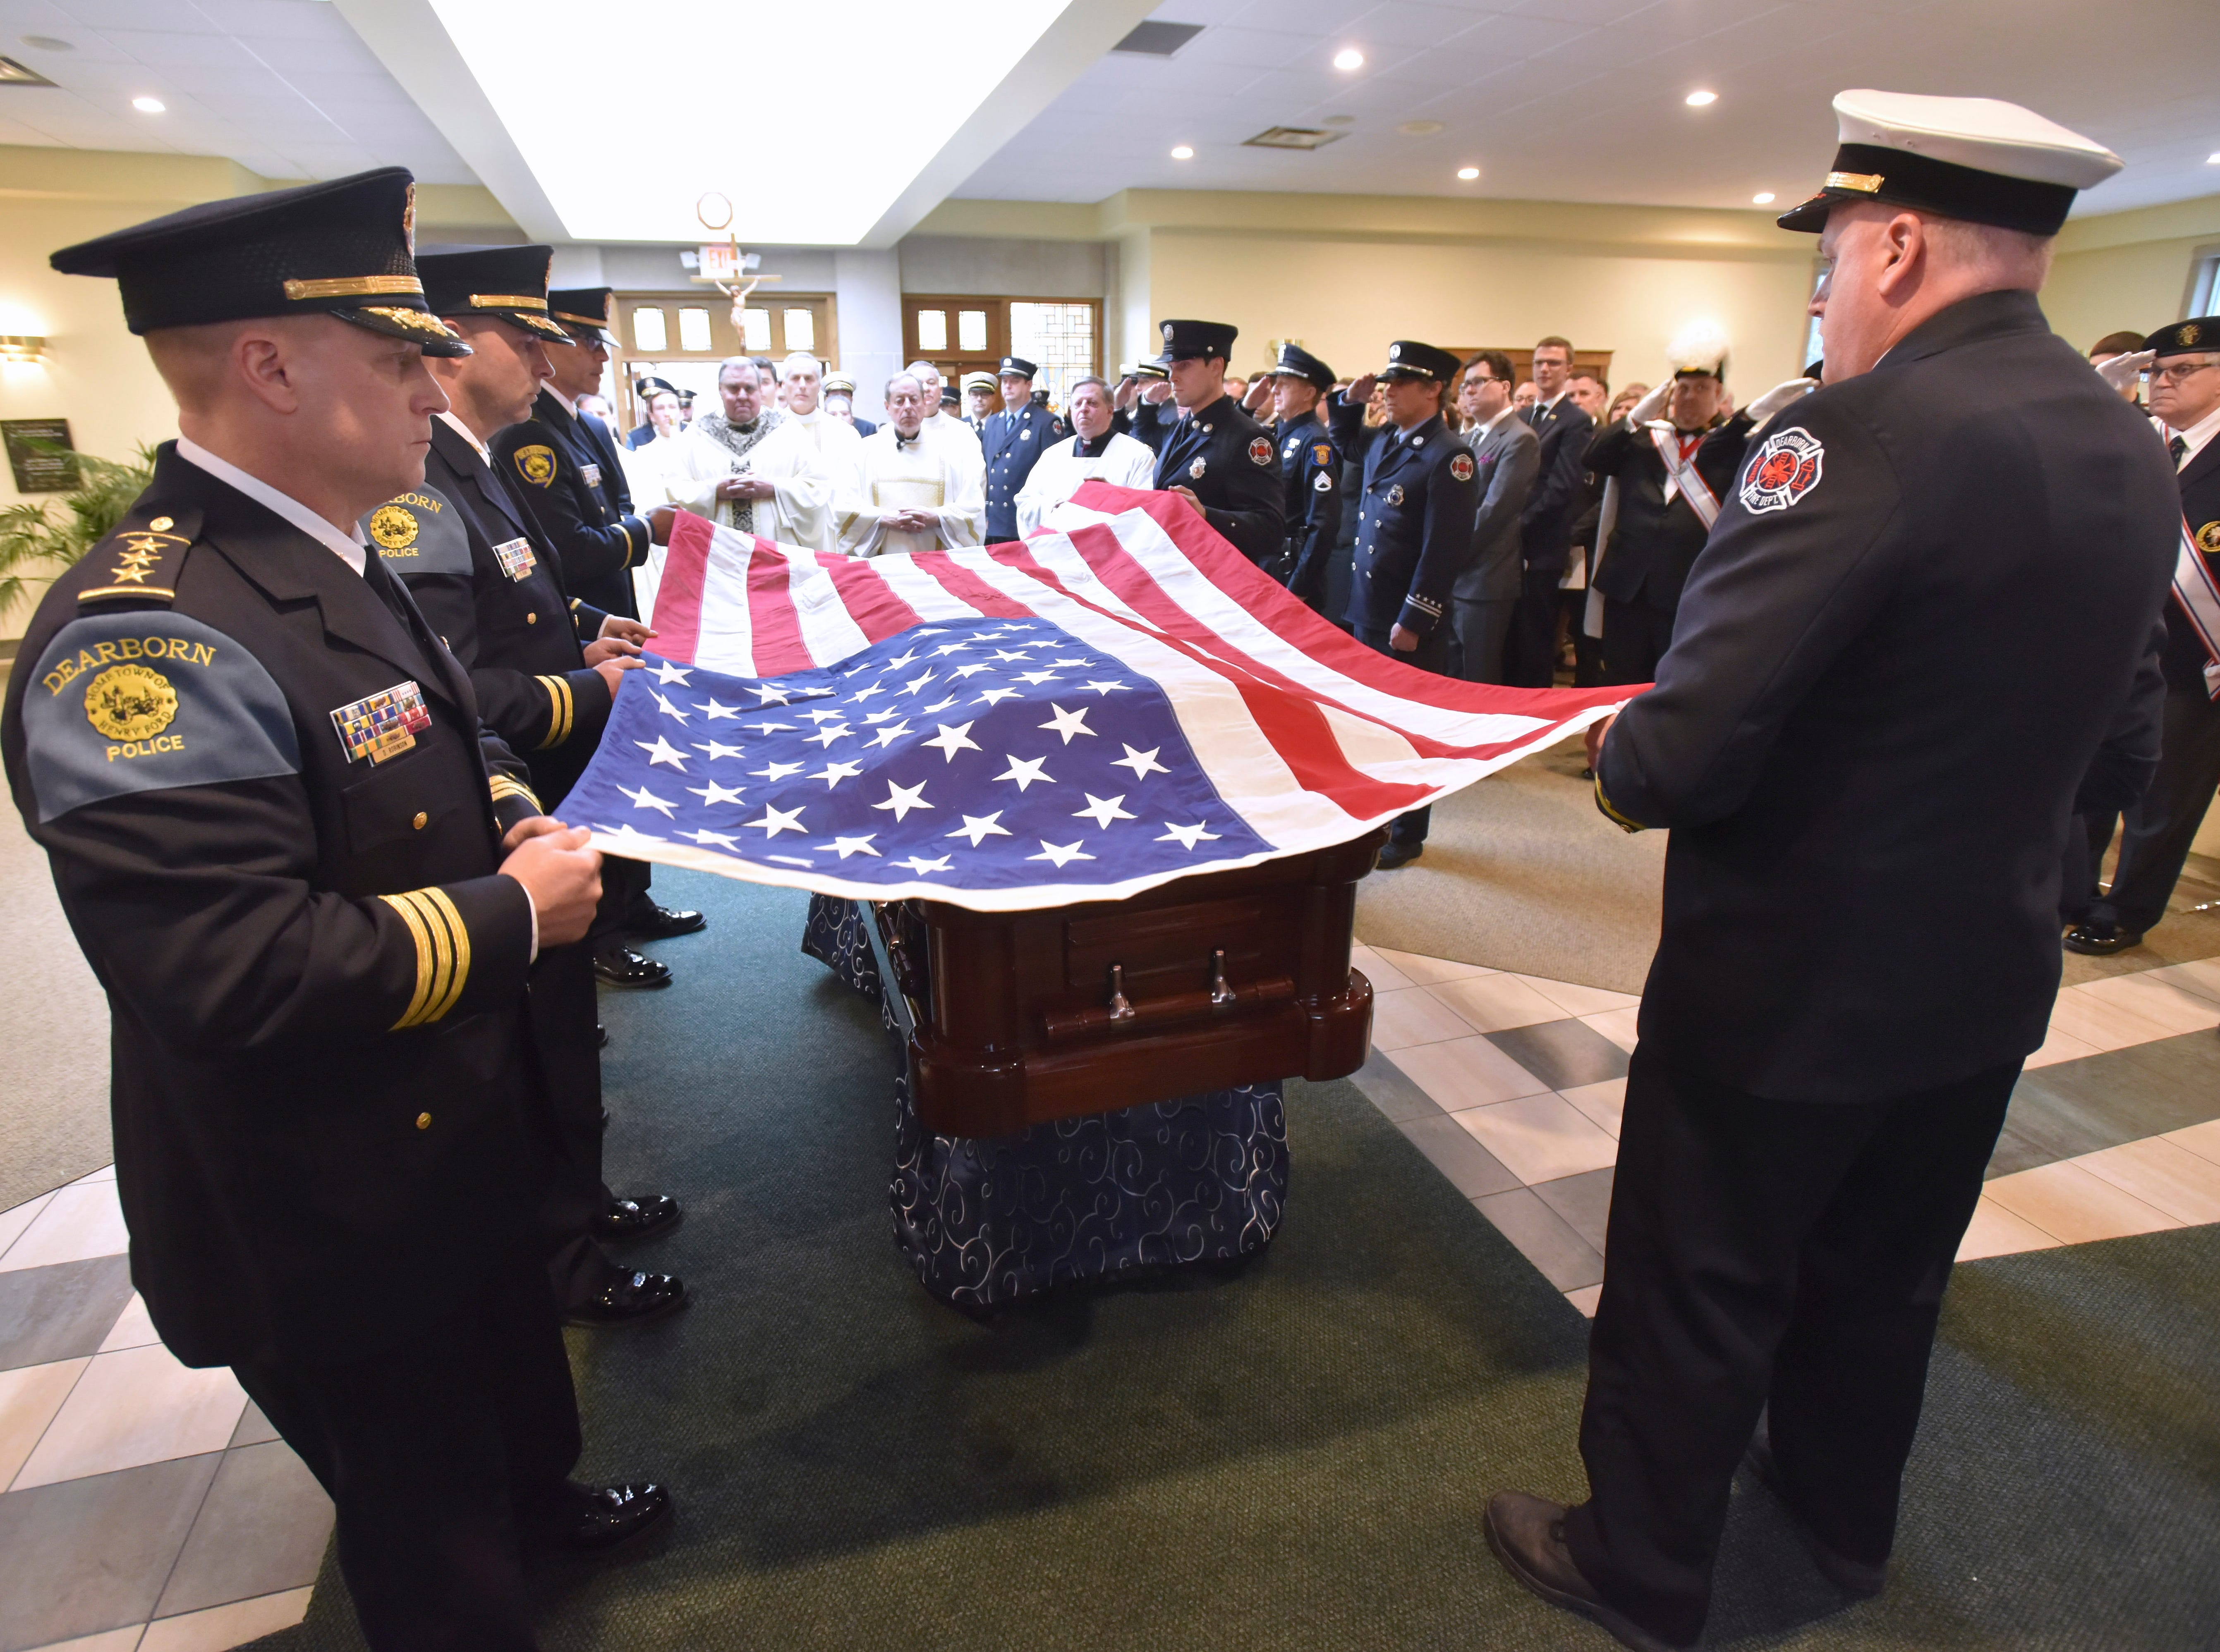 Dearborn police officers and fire fighters drape the American Flag over John Dingell Jr.'s casket at the end of the funeral service.